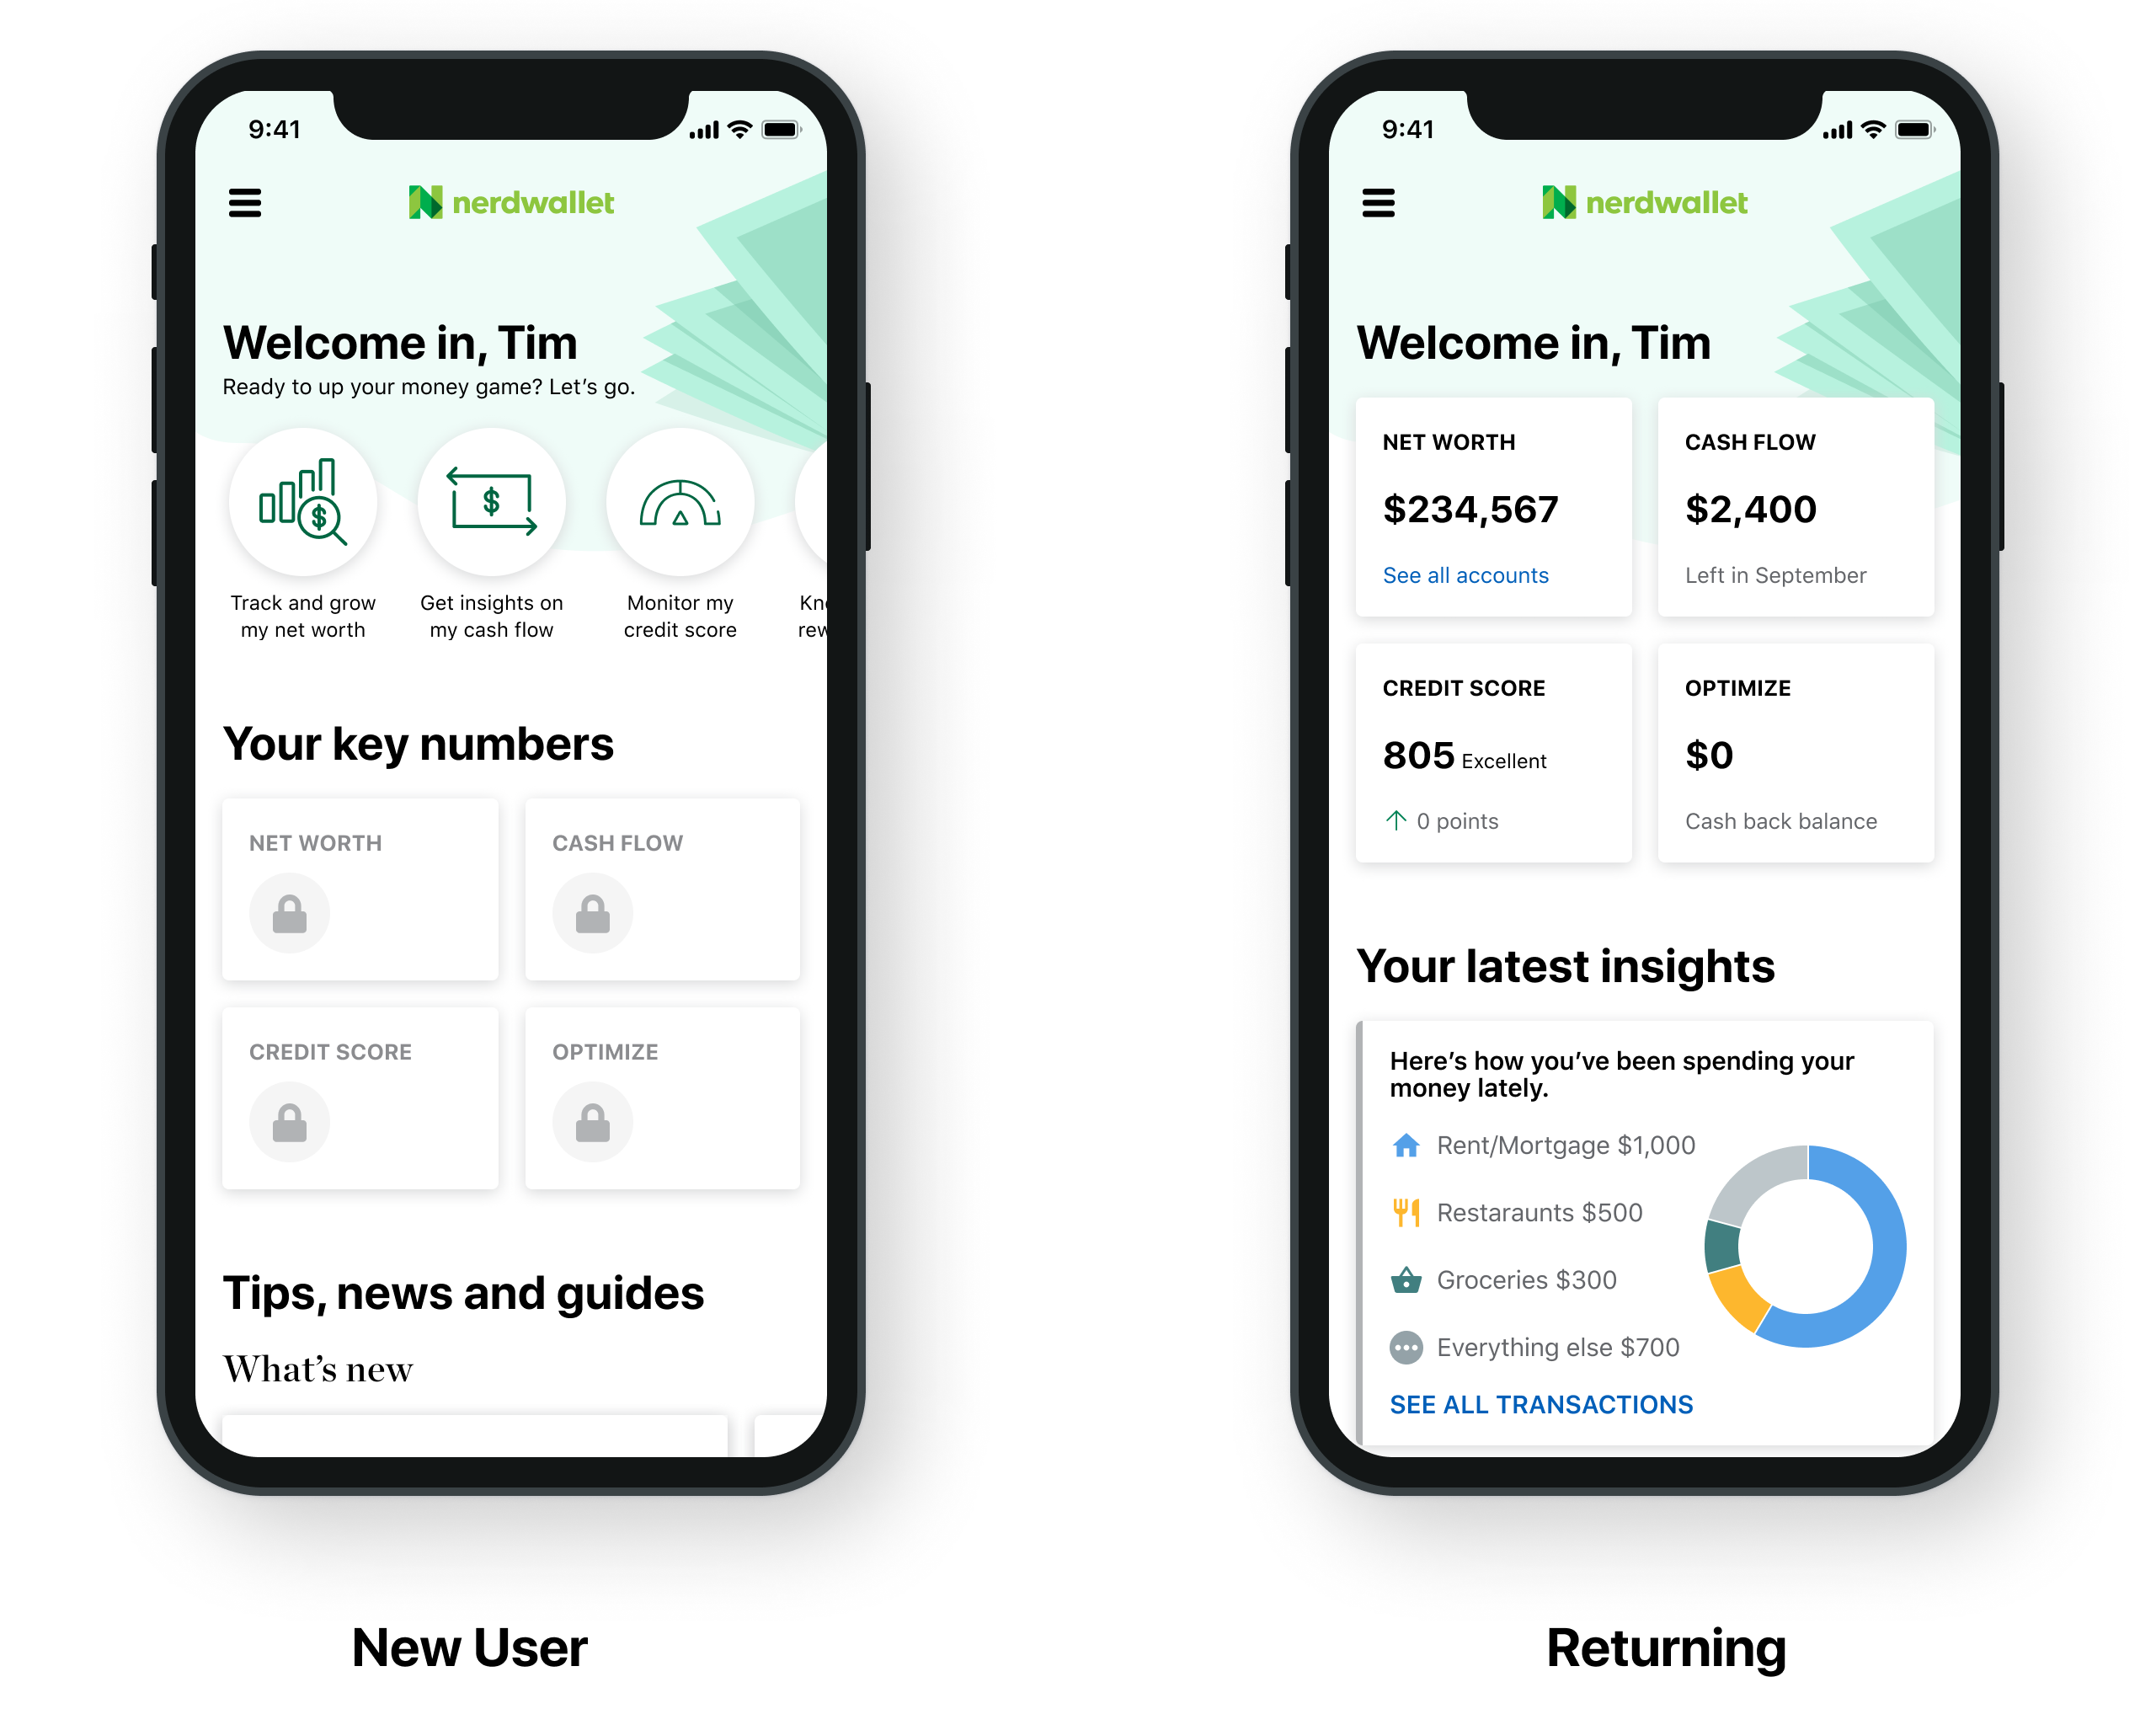 Two screenshots, showing how the redesign looks for a new user and a returning user. In the former, the activation entrypoints are more prominent. In the latter, the primary focus is the user's top financial numbers.